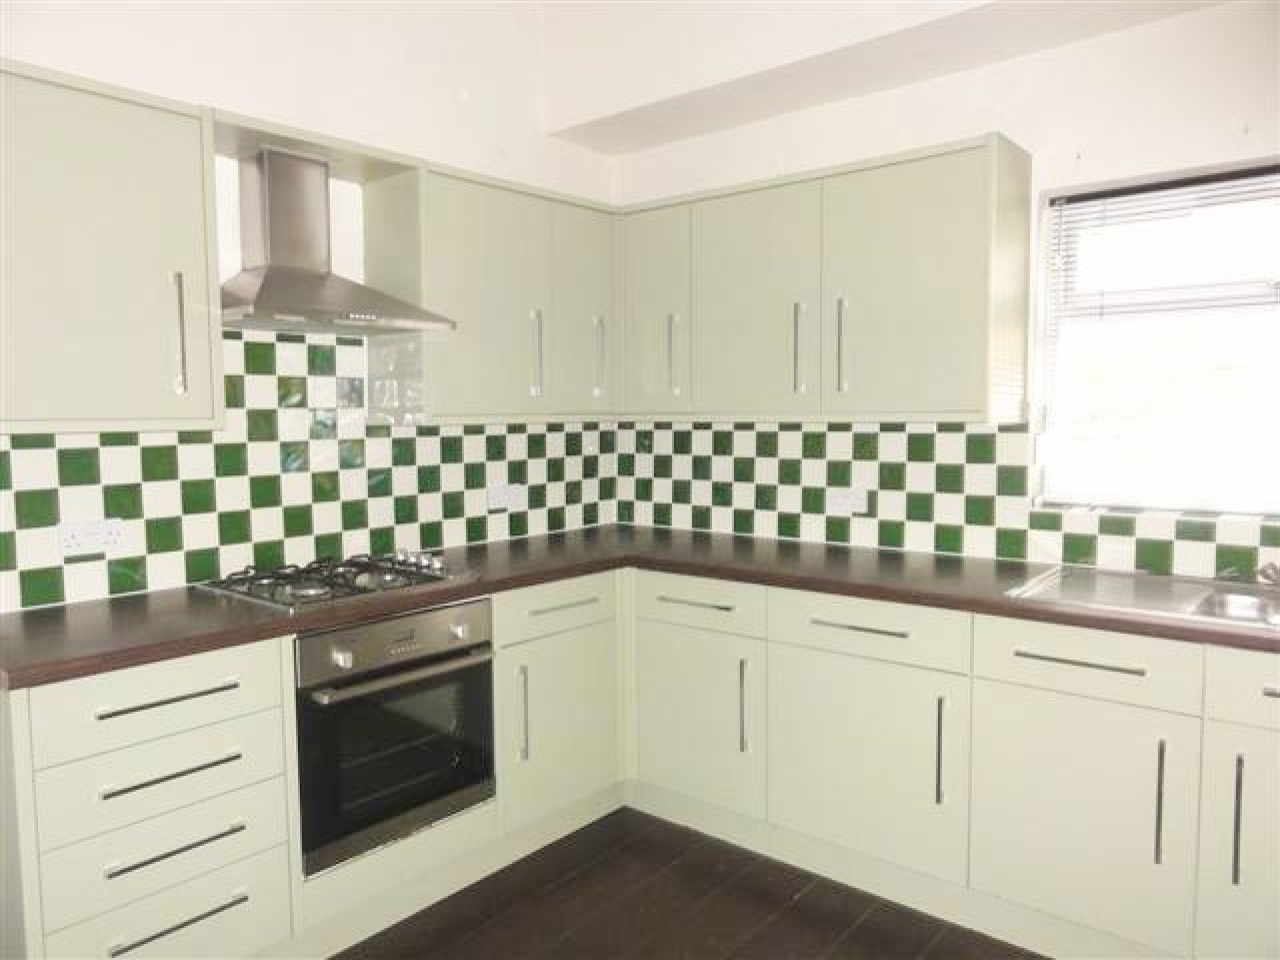 2 Bed Ground Floor Flat/apartment To Rent - Photograph 1